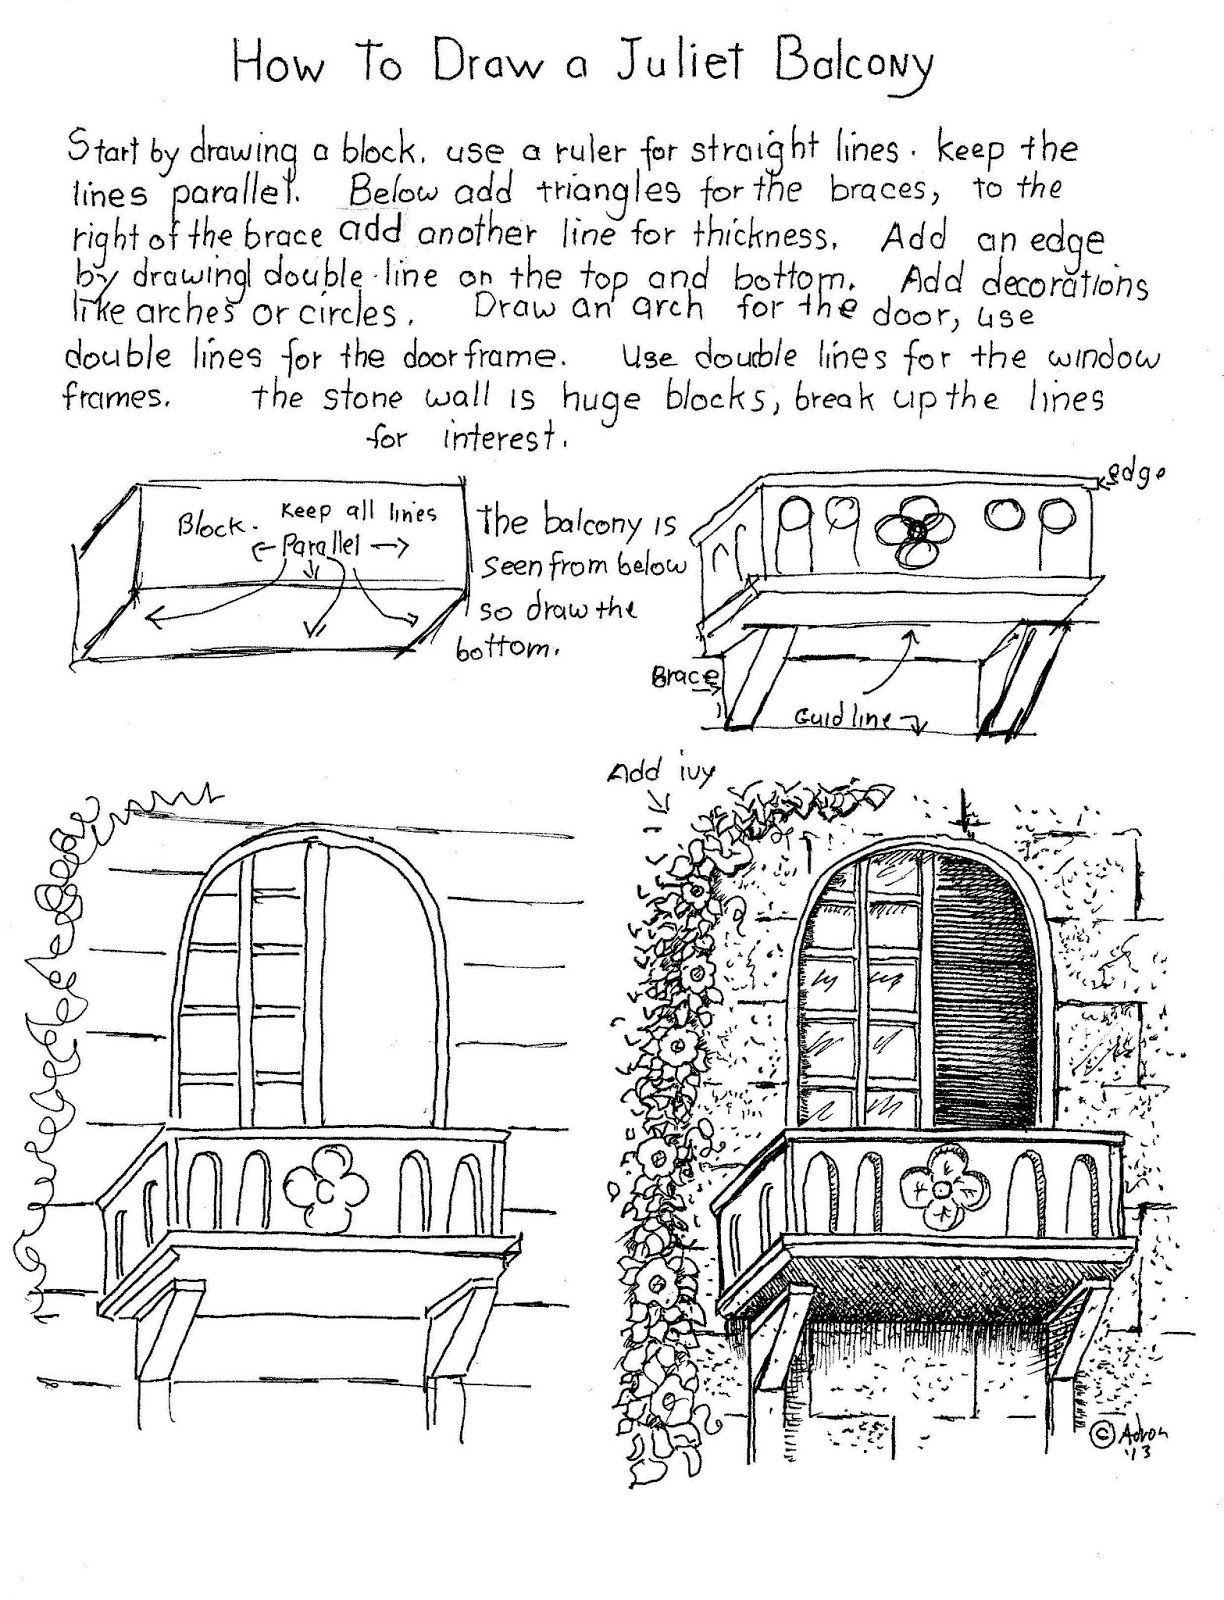 How To Draw A Balcony Worksheet Read The Lesson Notes At The Blog